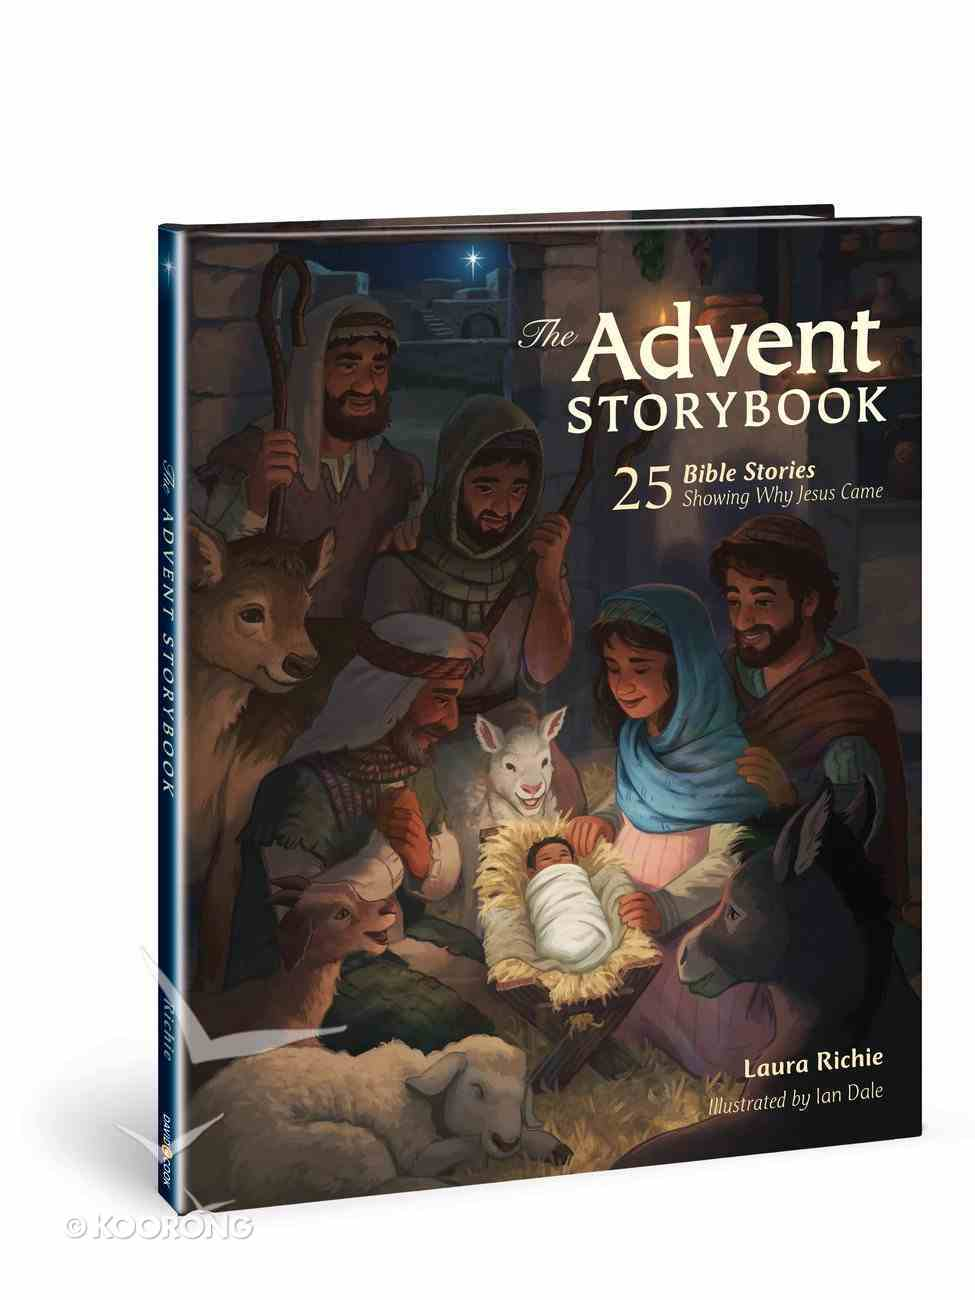 The Advent Storybook: 25 Bible Stories Showing Why Jesus Came Hardback